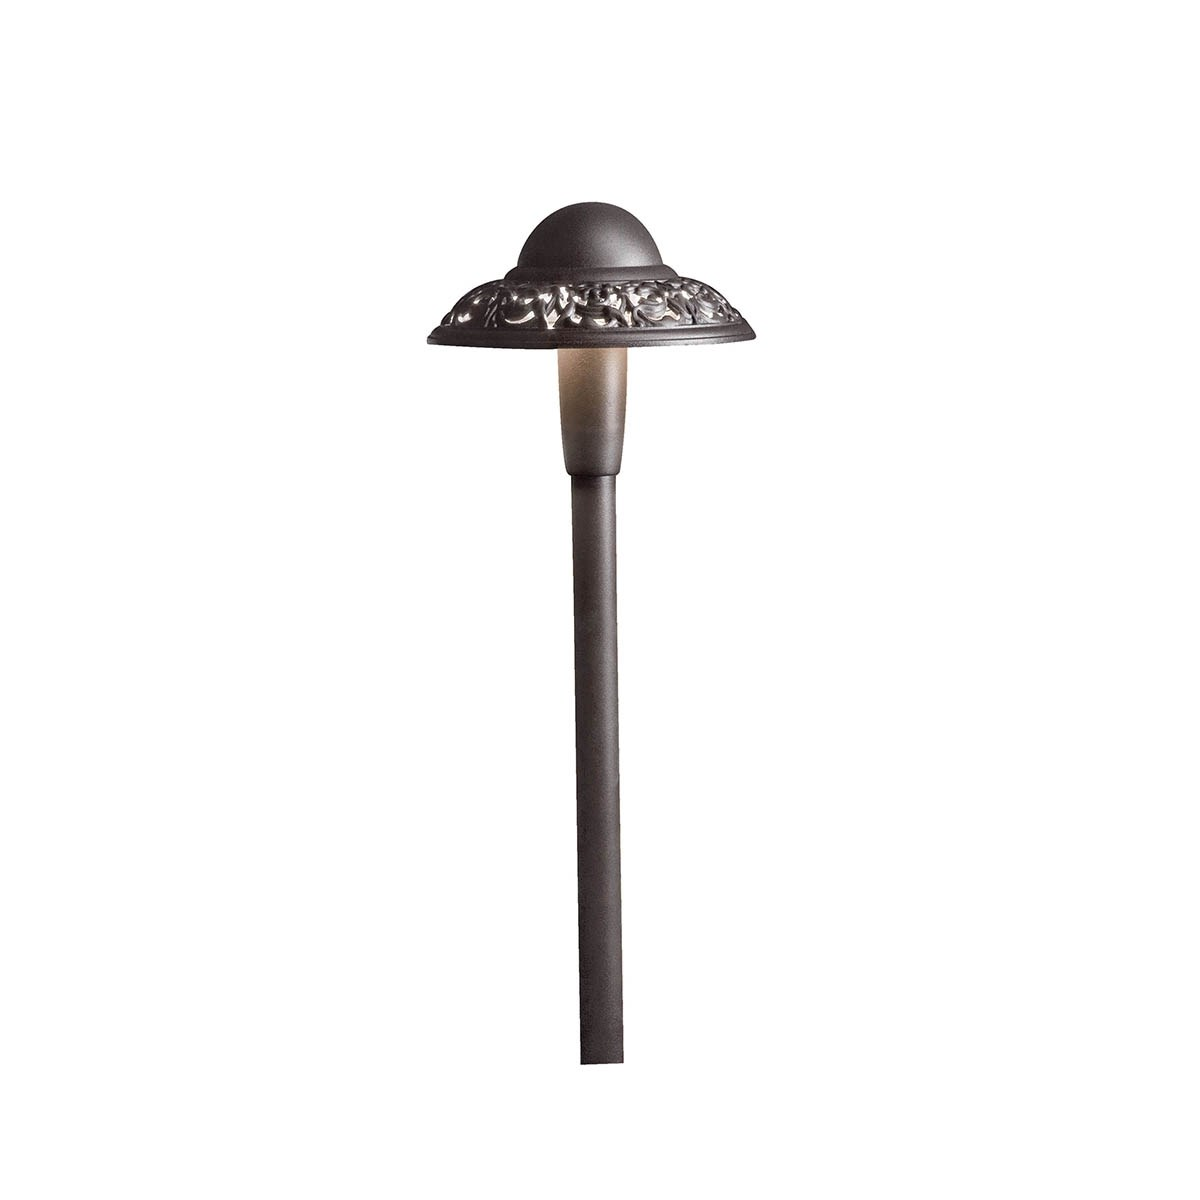 Pierced Dome 3000K LED Path Light Textured Architectural Bronze